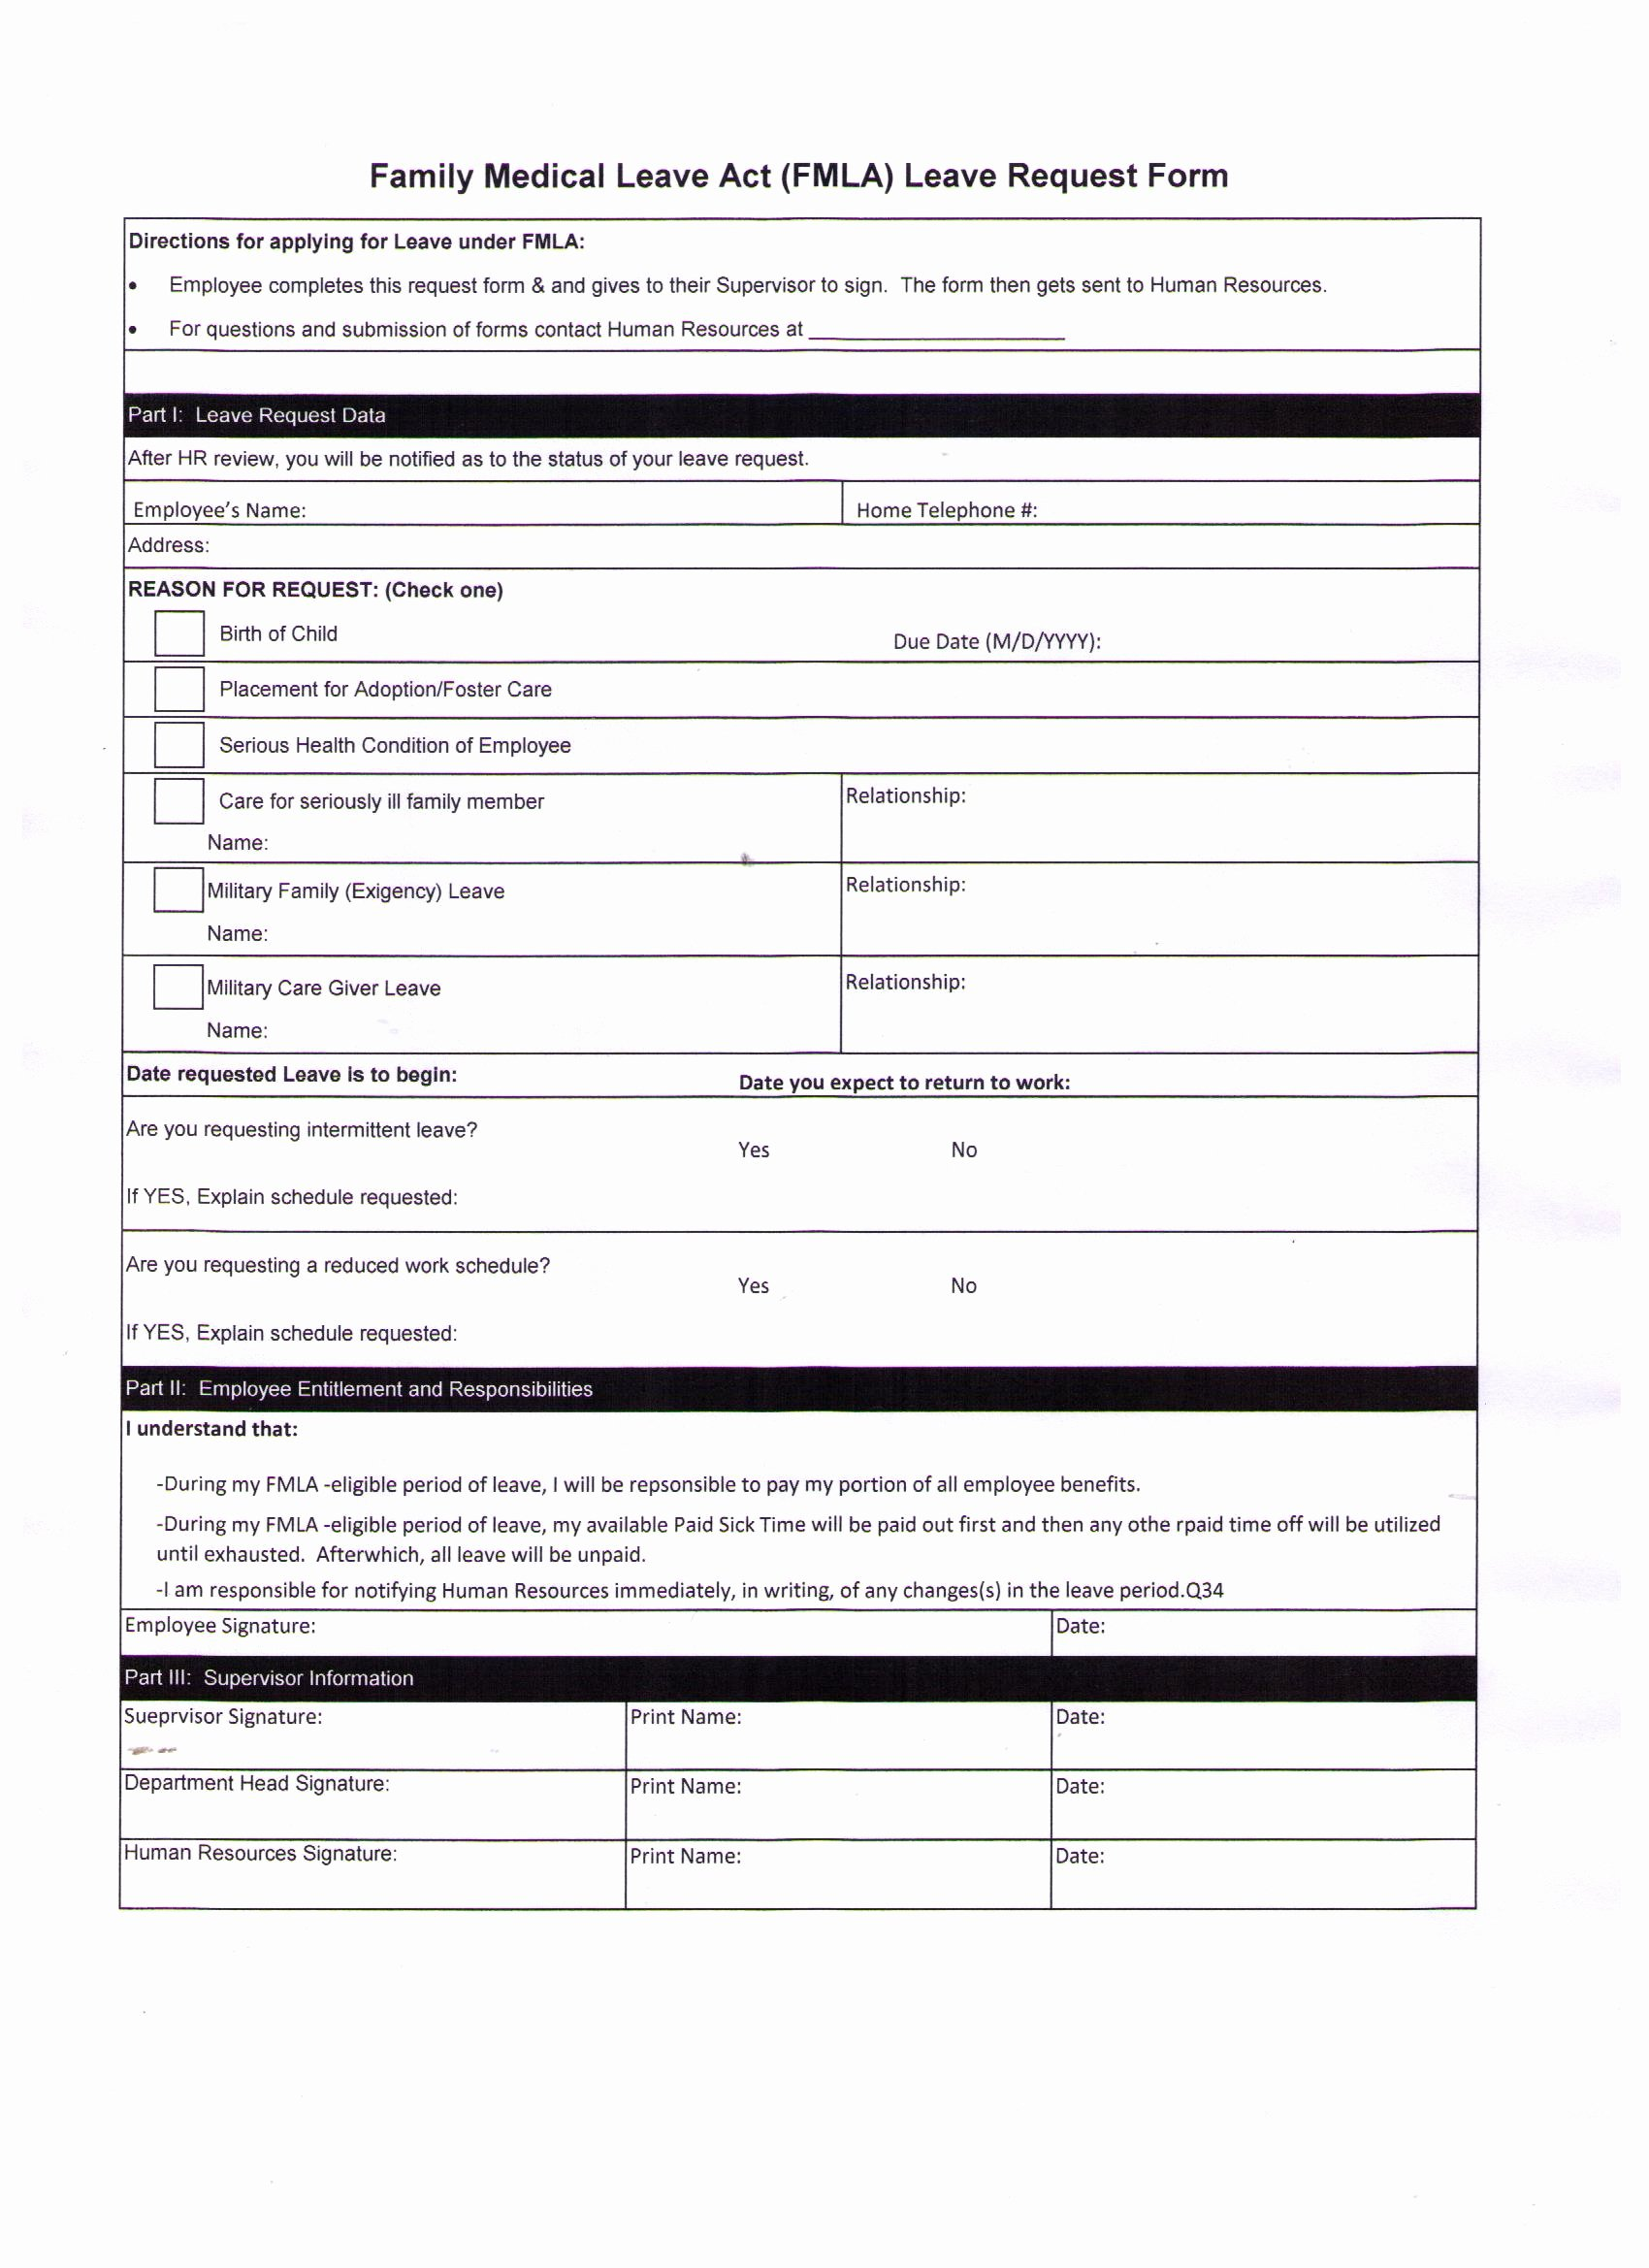 Human Resources Documents Template Best Of Human Resources toolkit forms